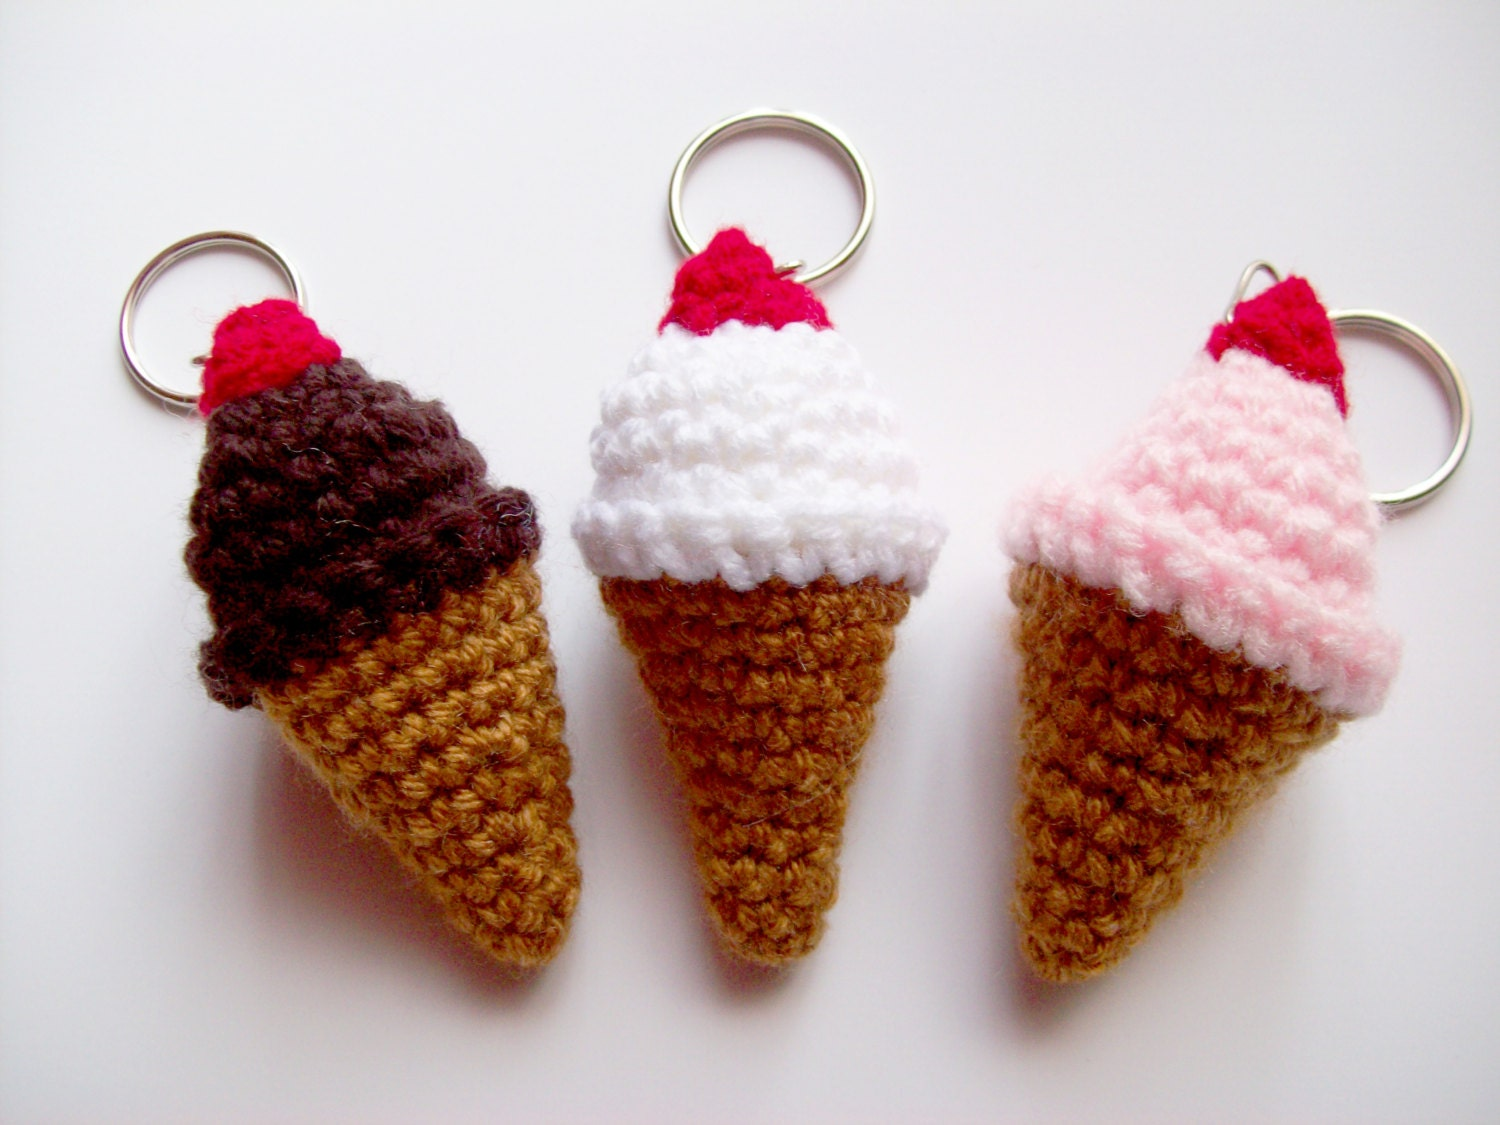 Crochet Keychain : Ice Cream Keychain, Amigurumi Crochet Key Ring, Kawaii Cute Bag Charm ...